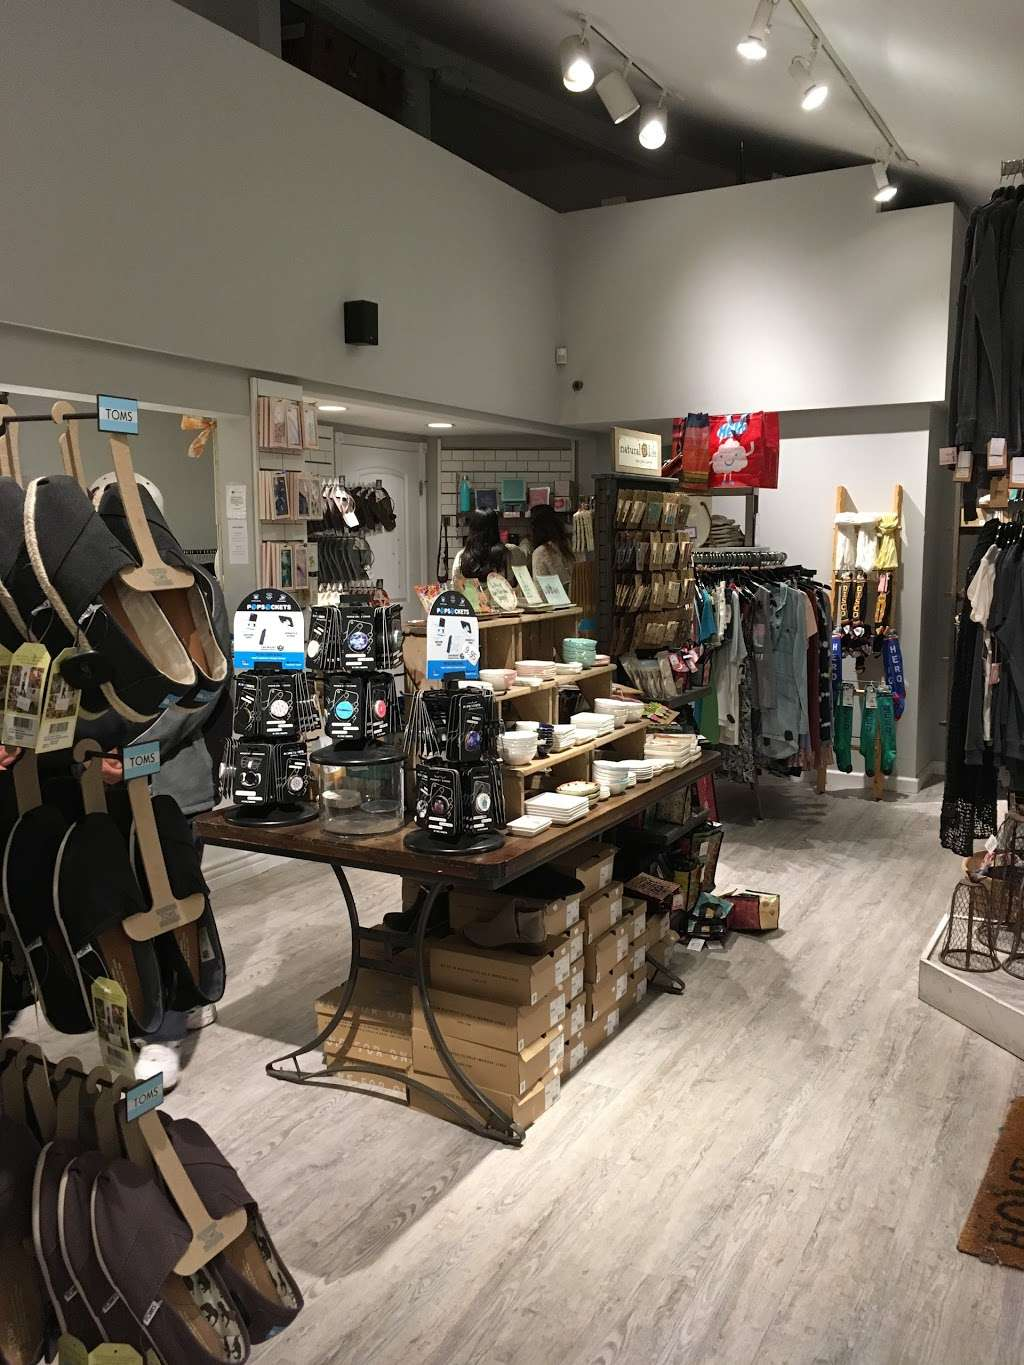 Urban Girl Accessories - clothing store  | Photo 6 of 10 | Address: 837 W Harbor Dr Suite A, San Diego, CA 92101, USA | Phone: (619) 231-8845